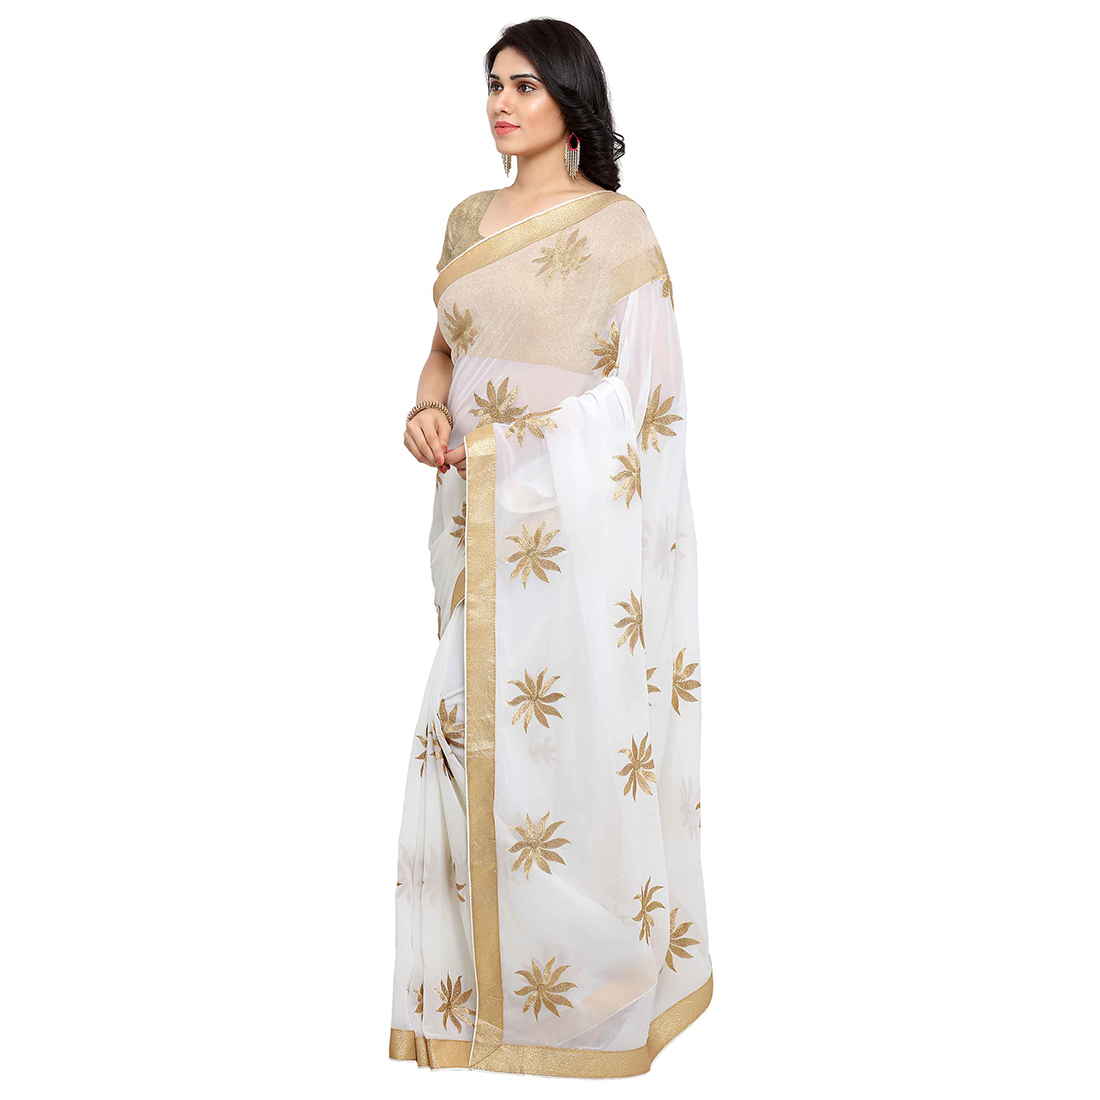 Classy Off-White Georgette Embroidered Saree